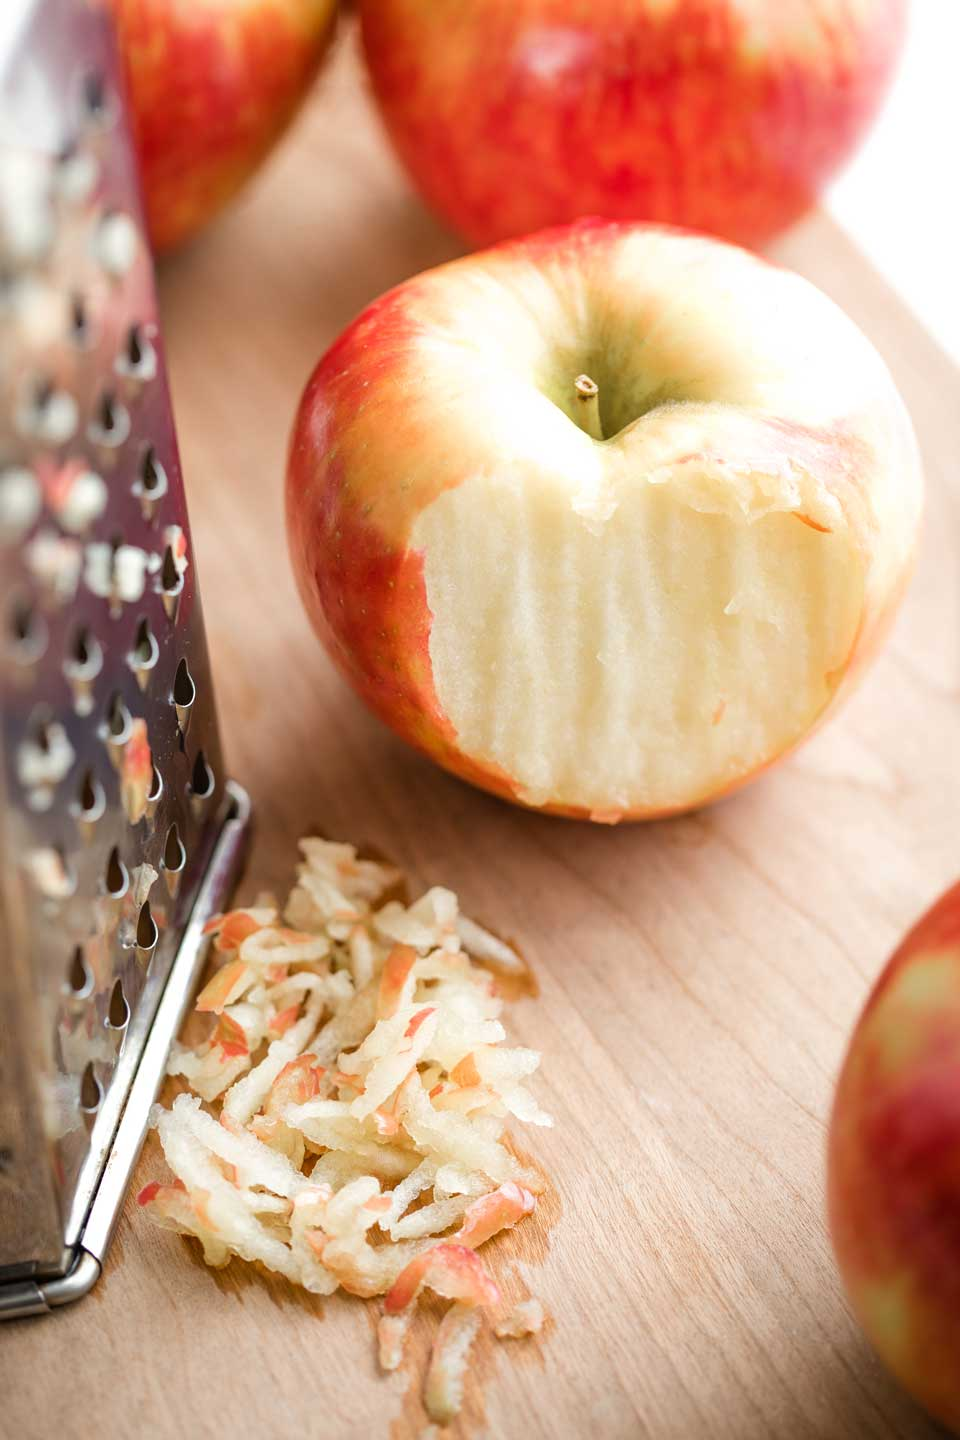 Honey Crisp apple that's been partially grated, sitting on cutting board next to a box grater and a small pile of grated apple